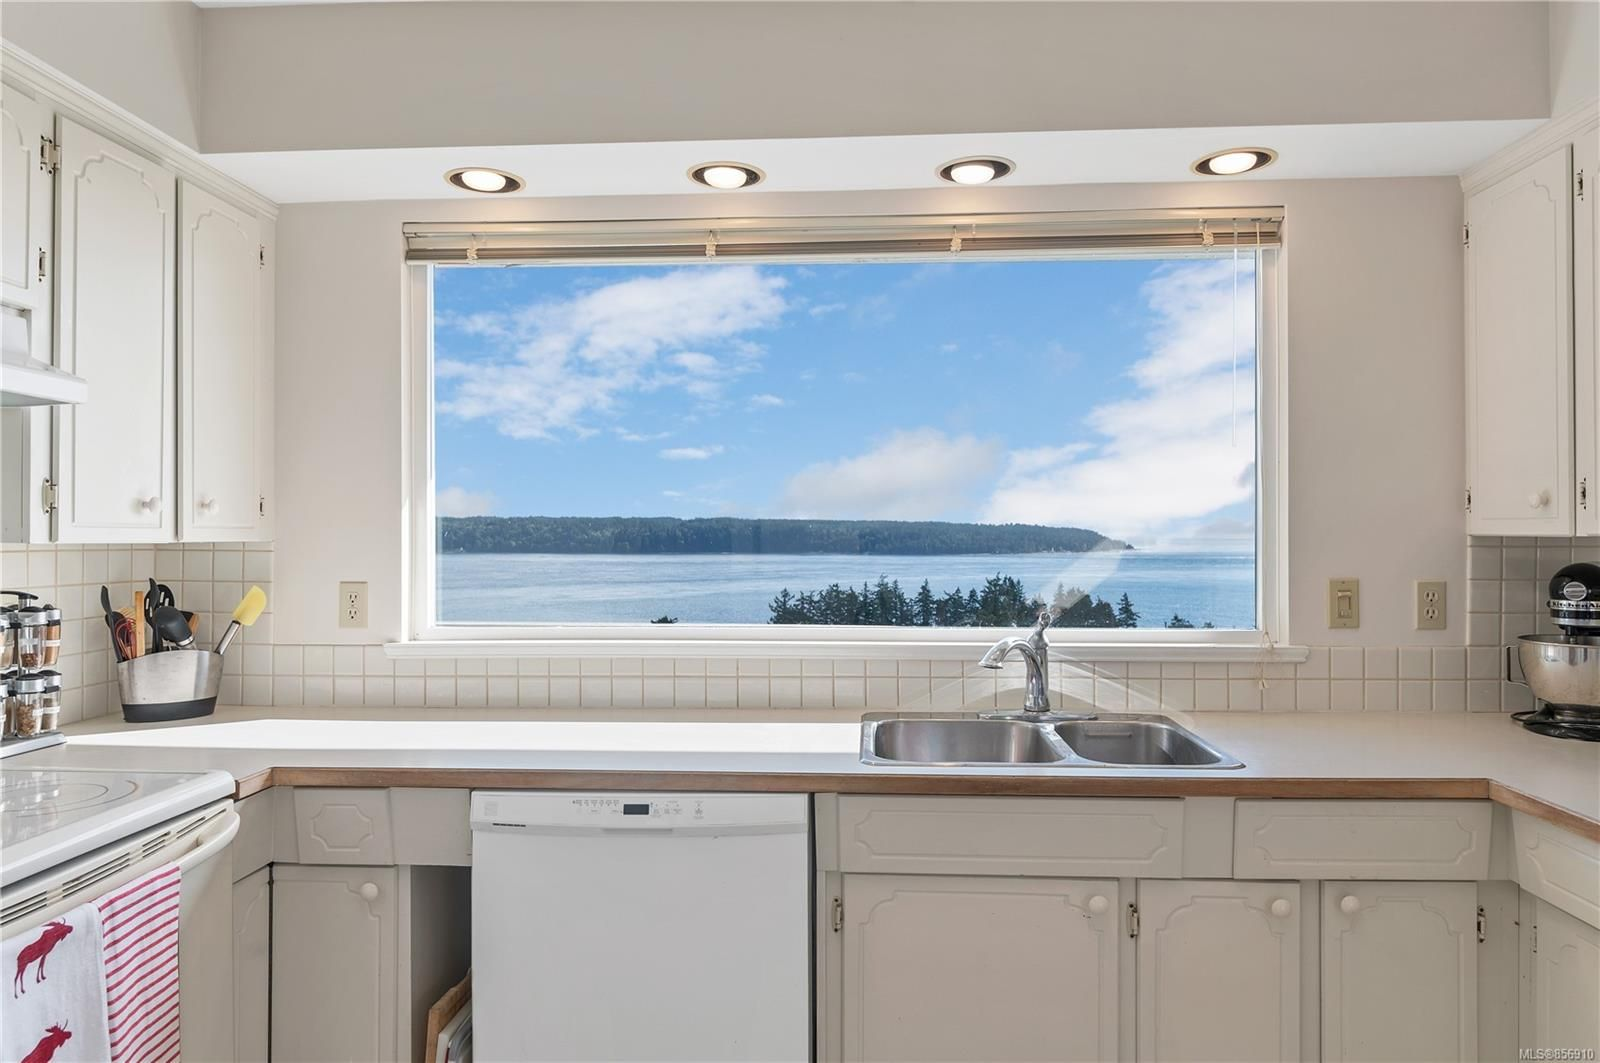 Photo 8: Photos: 215 S Alder St in : CR Campbell River Central House for sale (Campbell River)  : MLS®# 856910